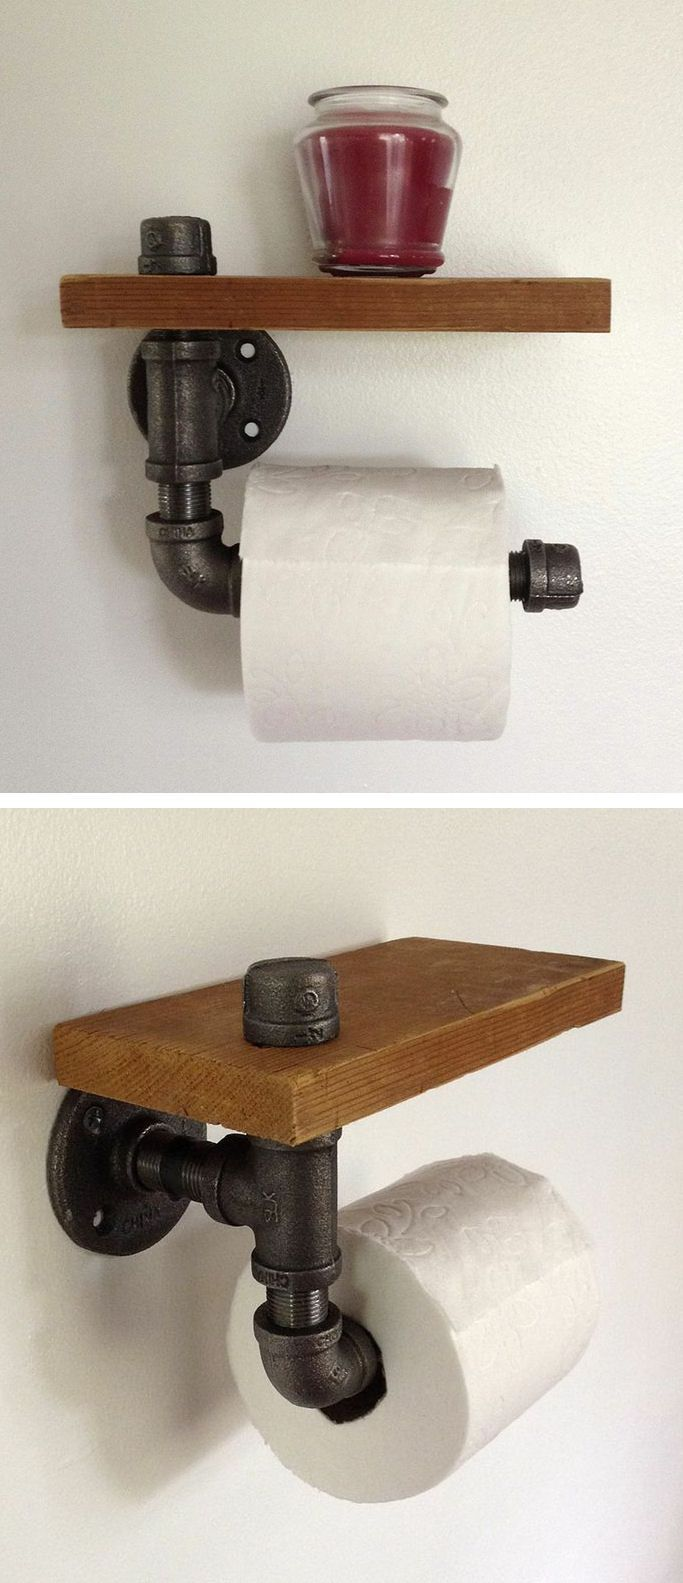 Pipe-fitting Toilet Paper Holder with Shelf  #WoodWorking   – wood workings bedroom